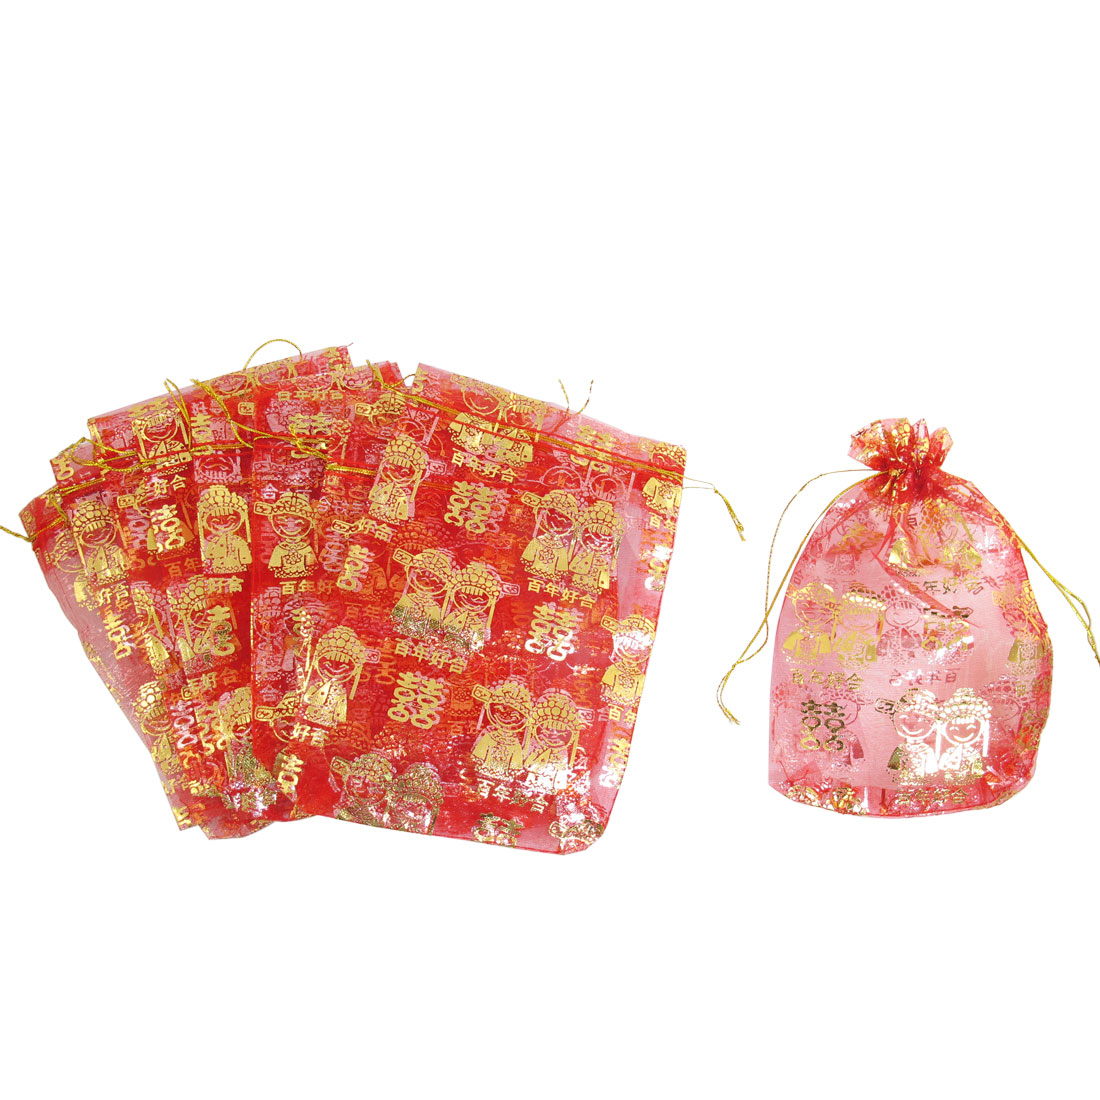 10 Pcs Chinese Bridegroom Bride Pattern Red Organza Wedding Candy Bag